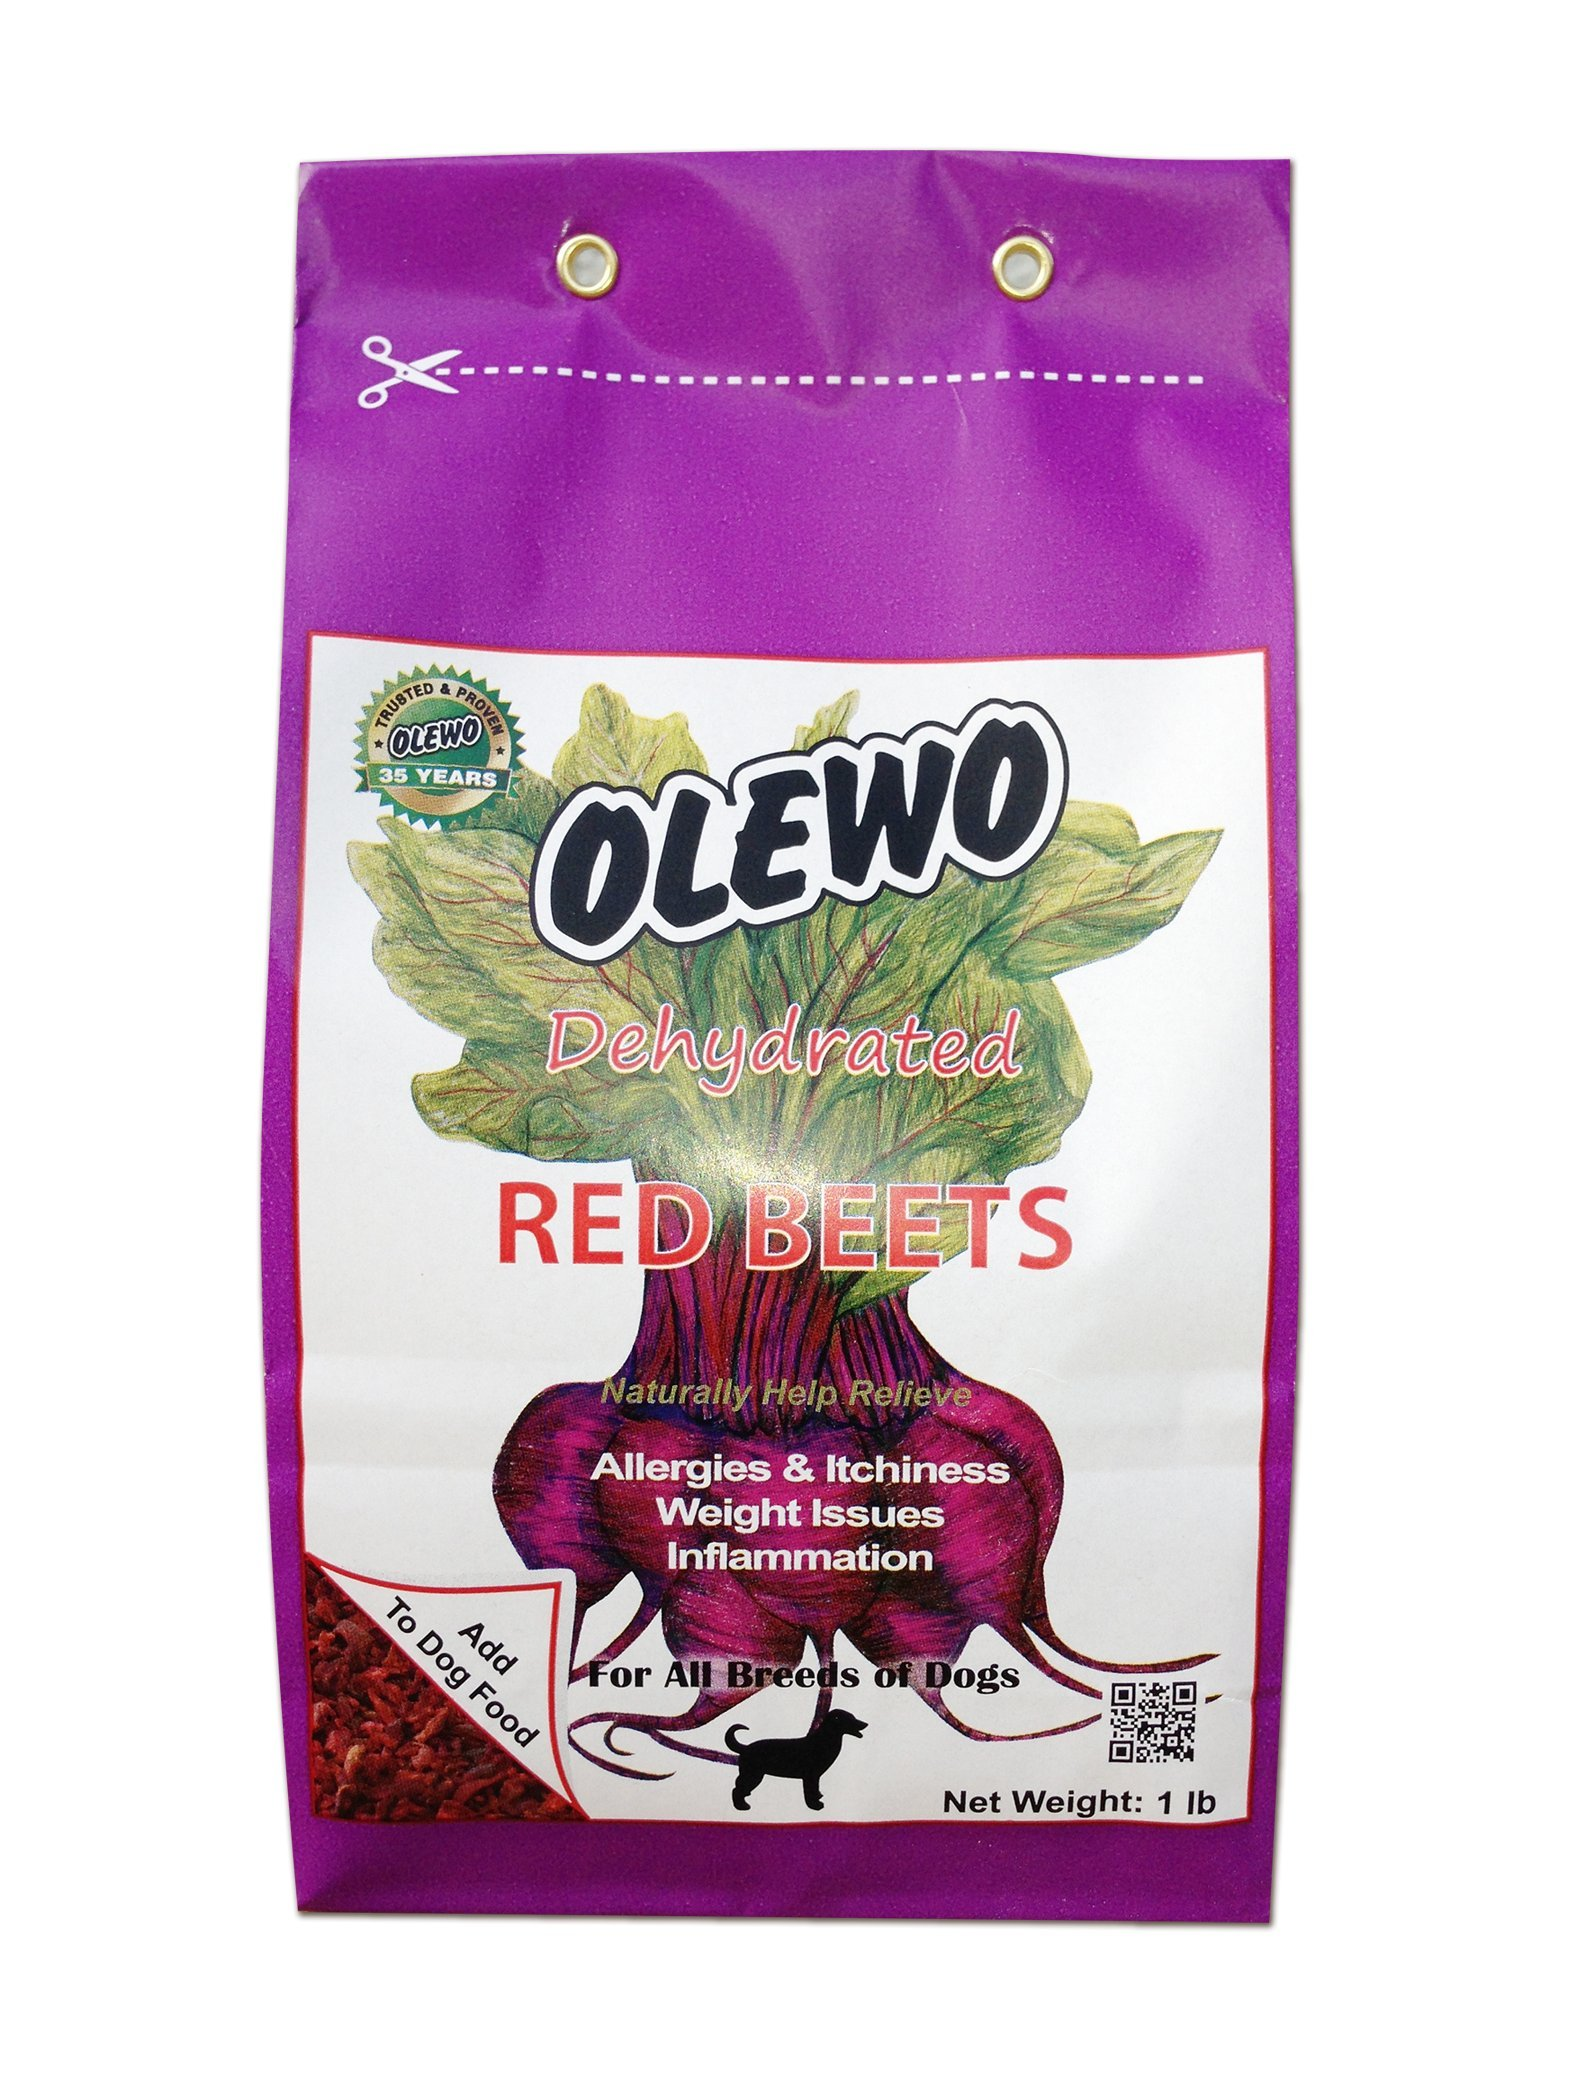 Olewo Dehydrated Red Beets Dog Food Supplement, Trial Size, 1.0-Pound